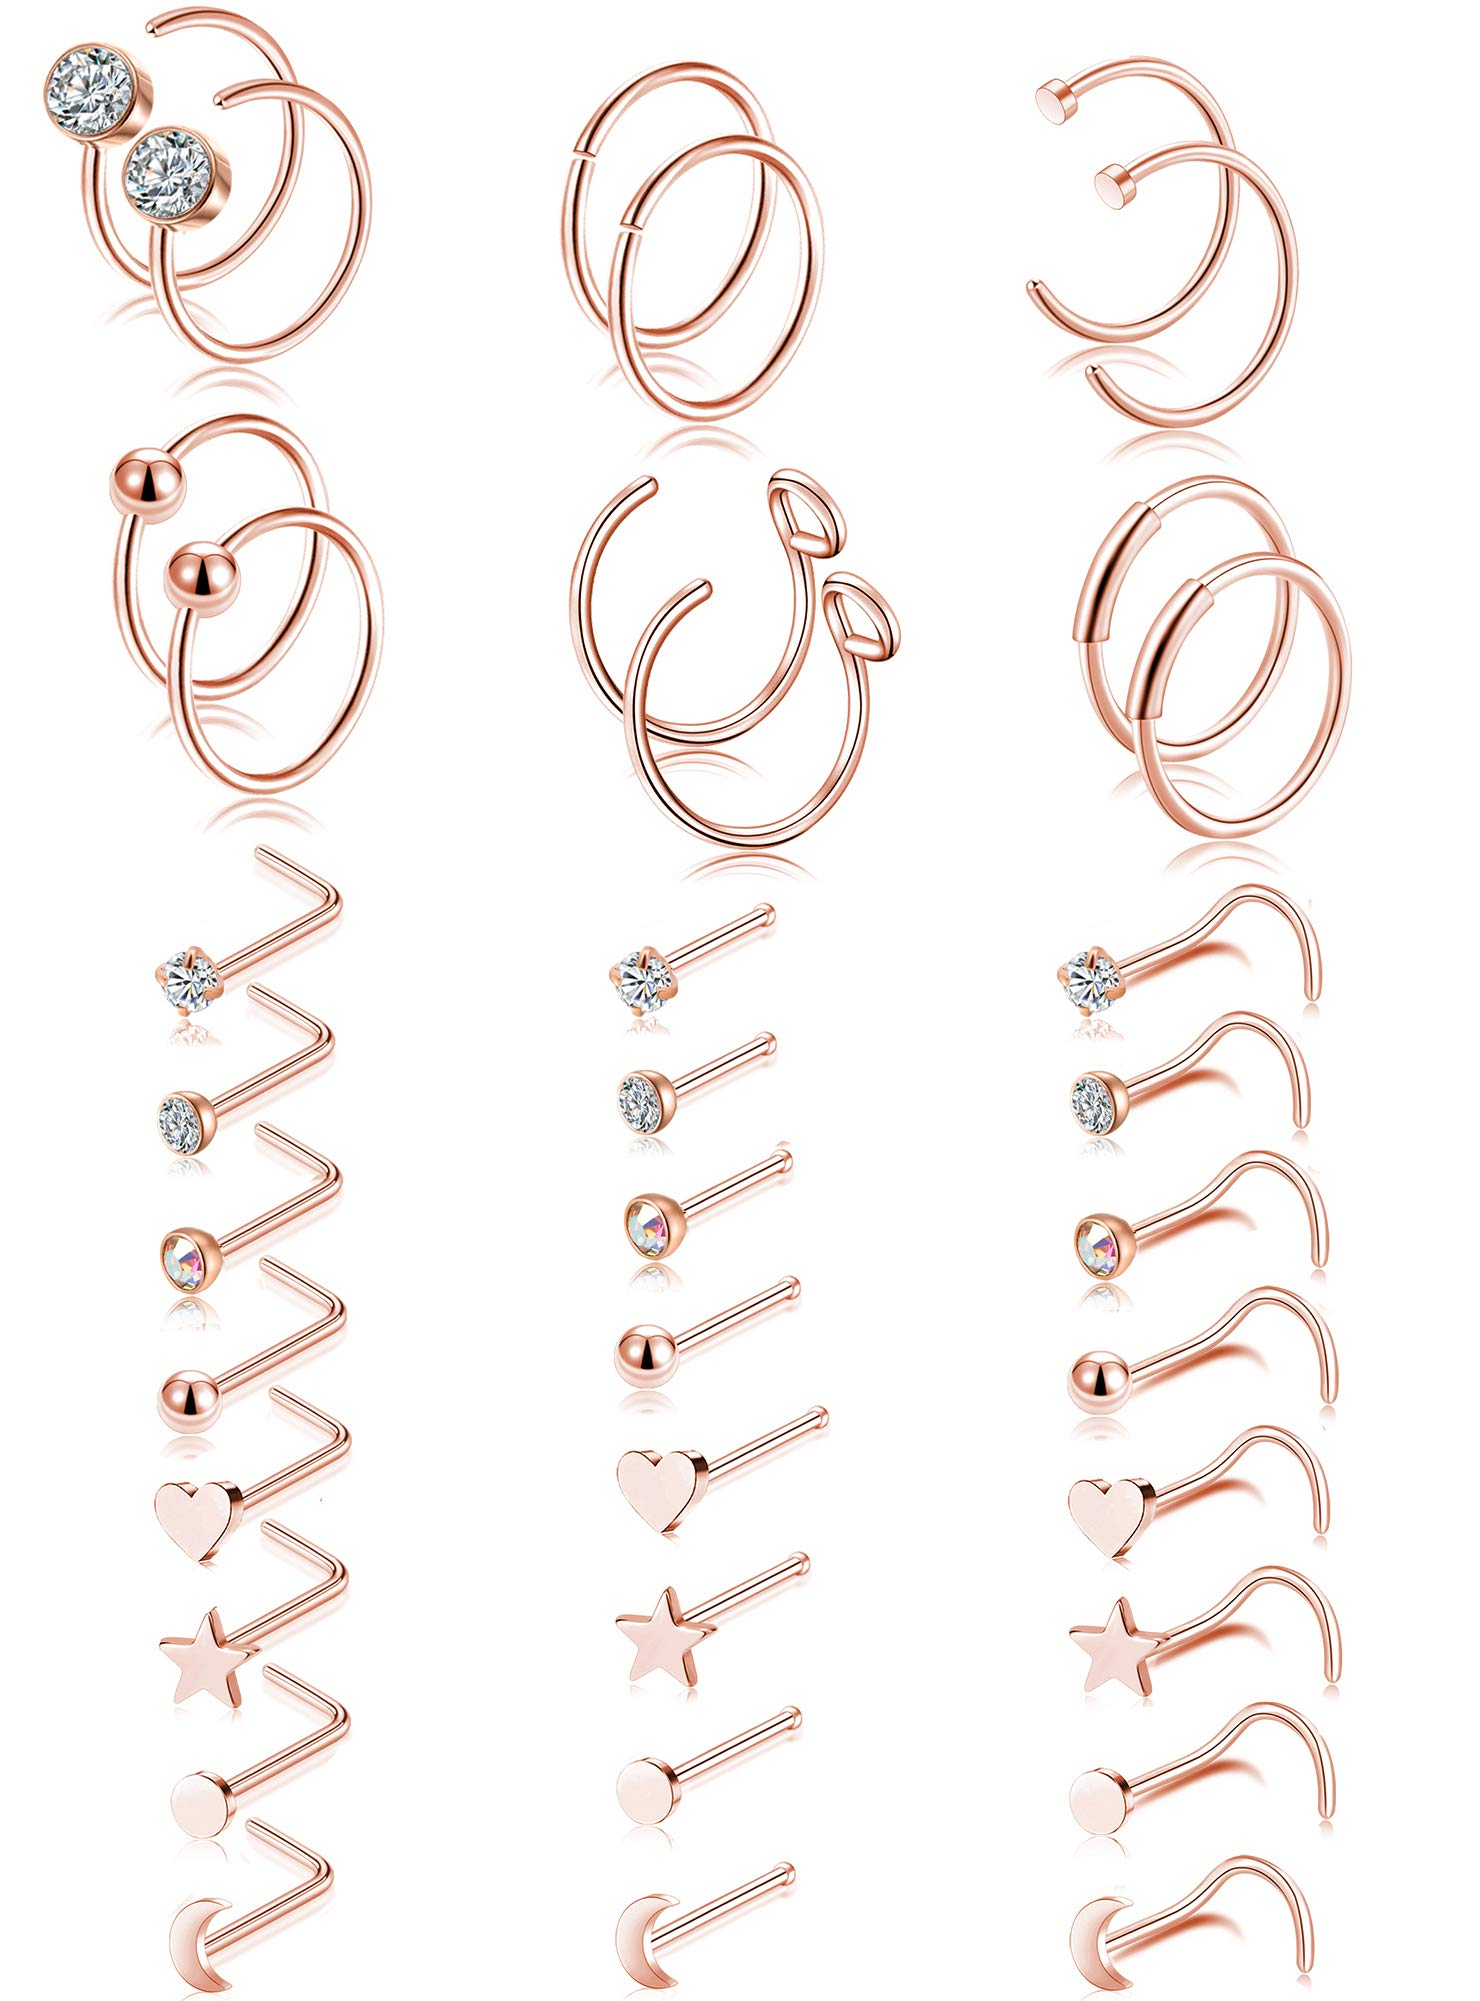 Tornito 20G 36Pcs Stainless Steel L Shaped Nose Ring CZ Nose Stud Retainer Labret Nose Piercing Jewelry (A0:30Pcs,Rose Gold Tone)